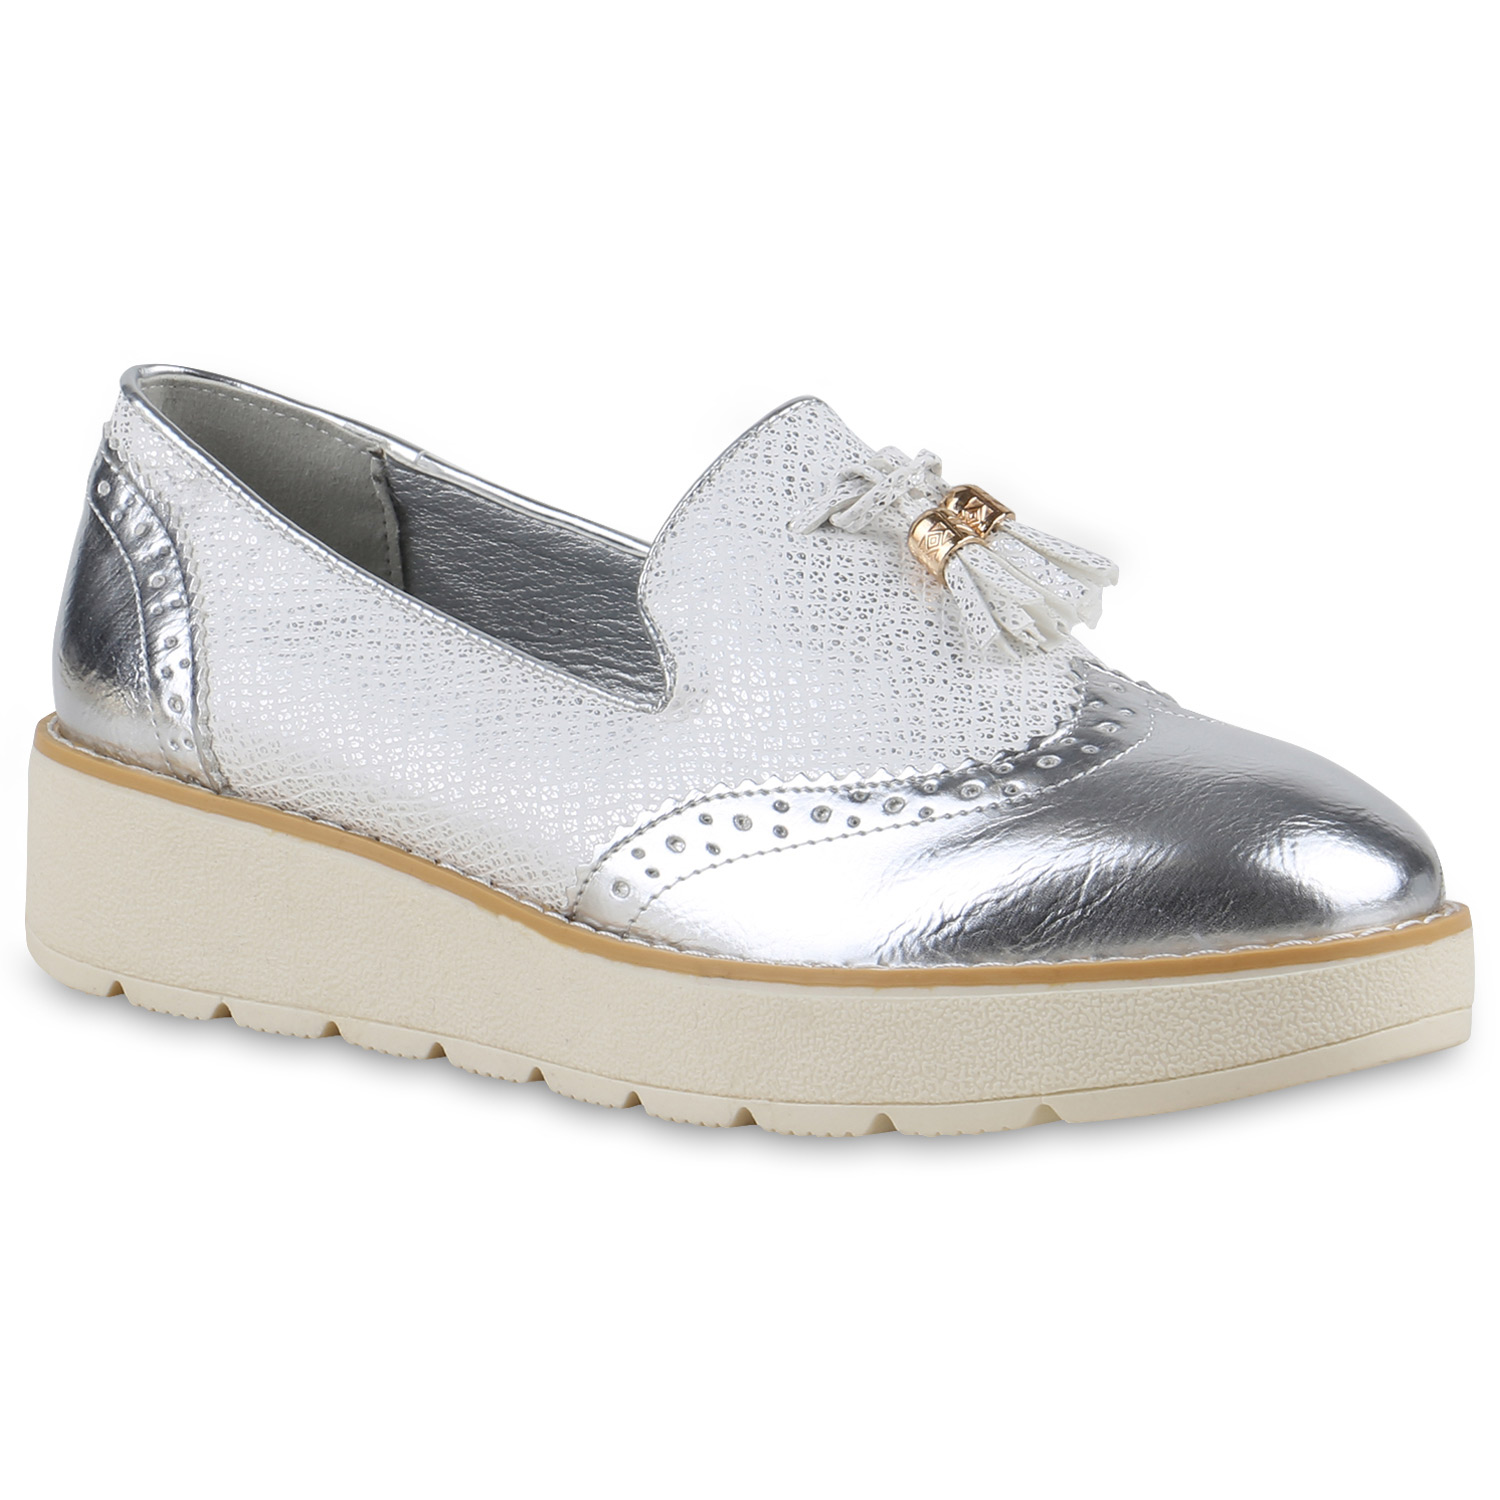 Damen Slippers Loafers - Silber